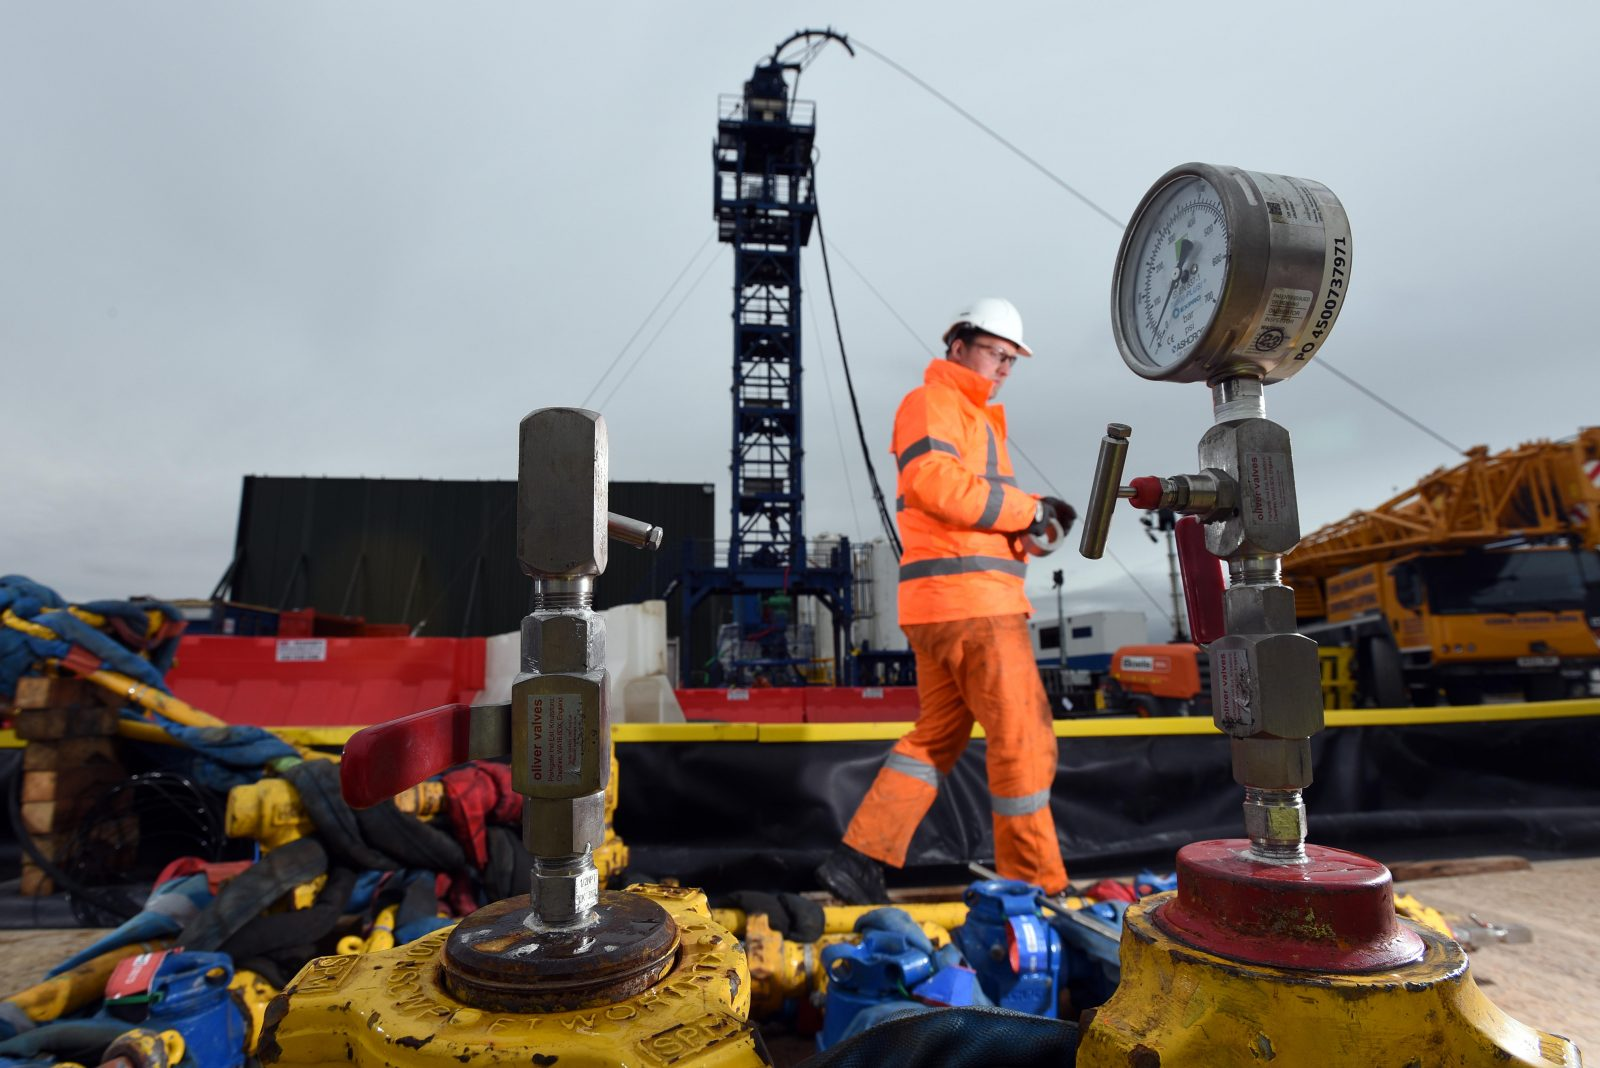 Cuadrilla seeks extension to continue fracking UK site until 2021